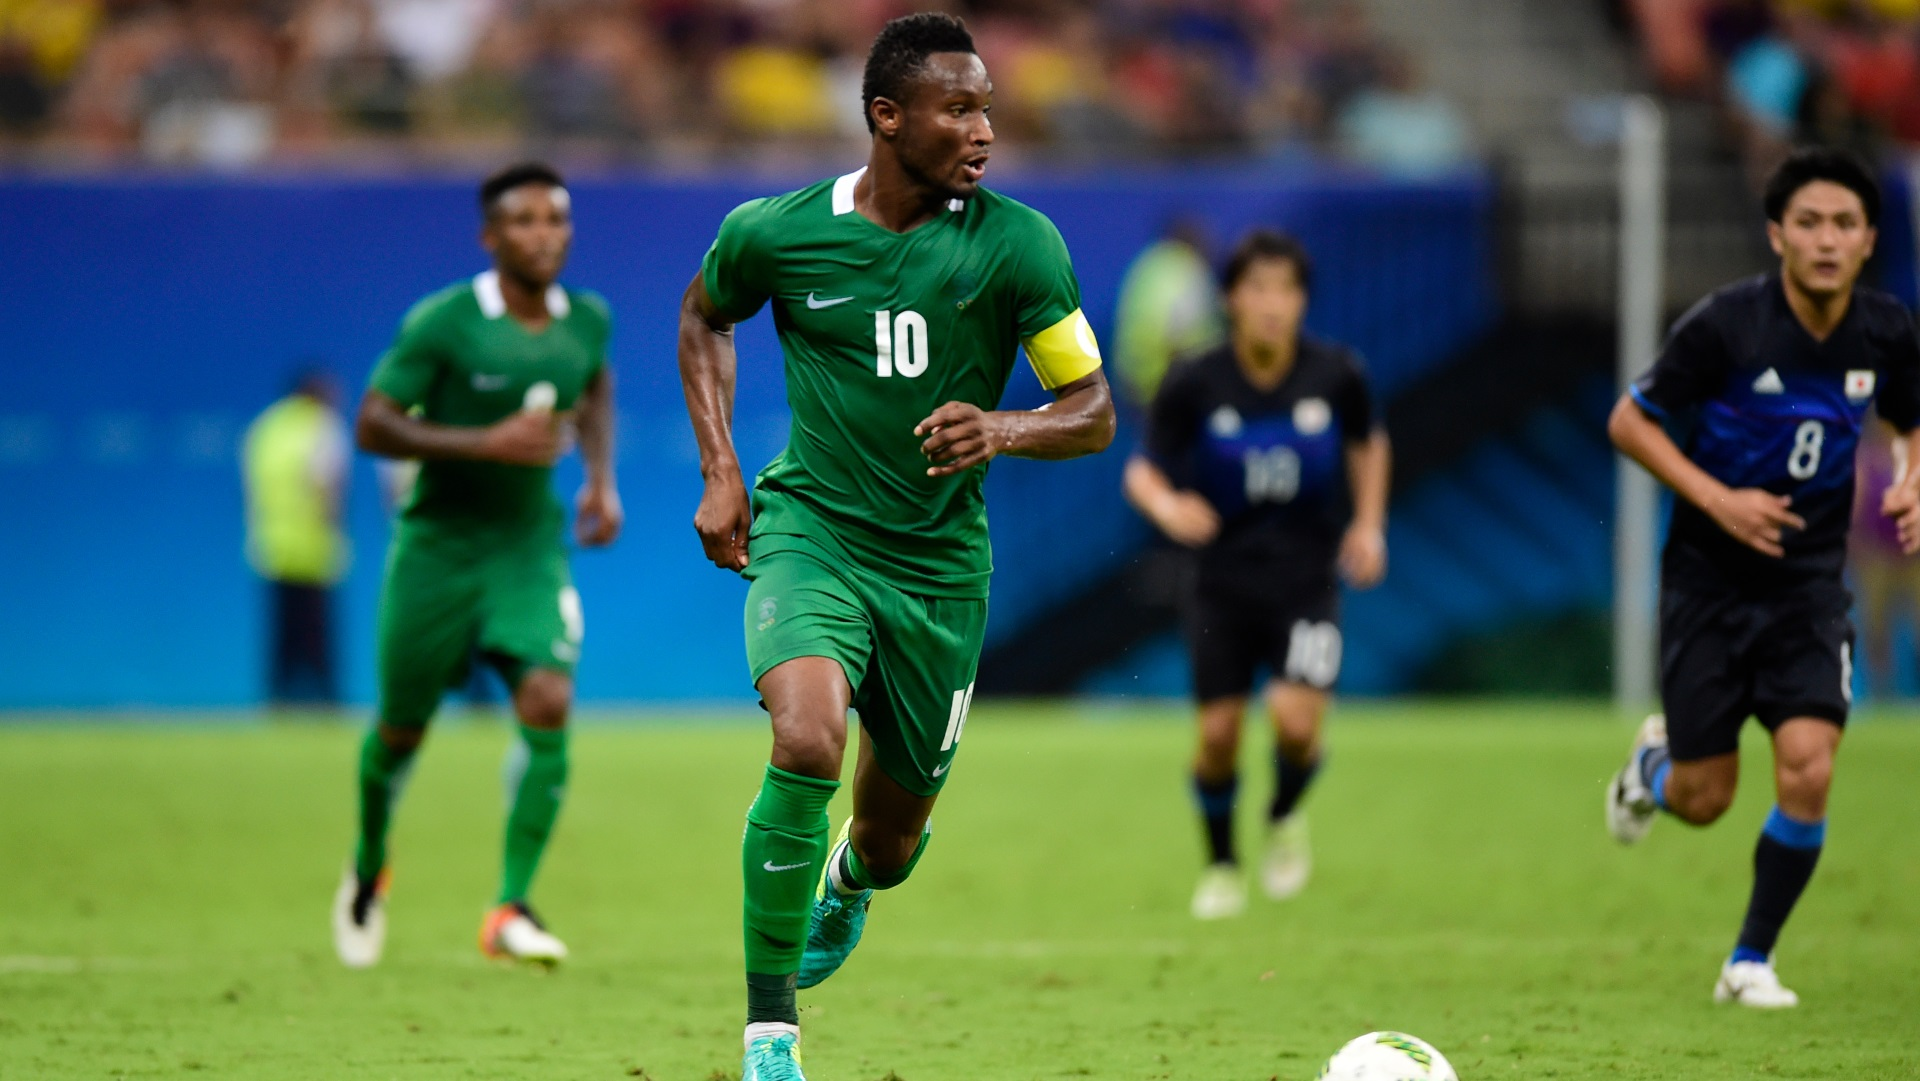 Victor Obinna: all the fun about a talented Nigerian football player